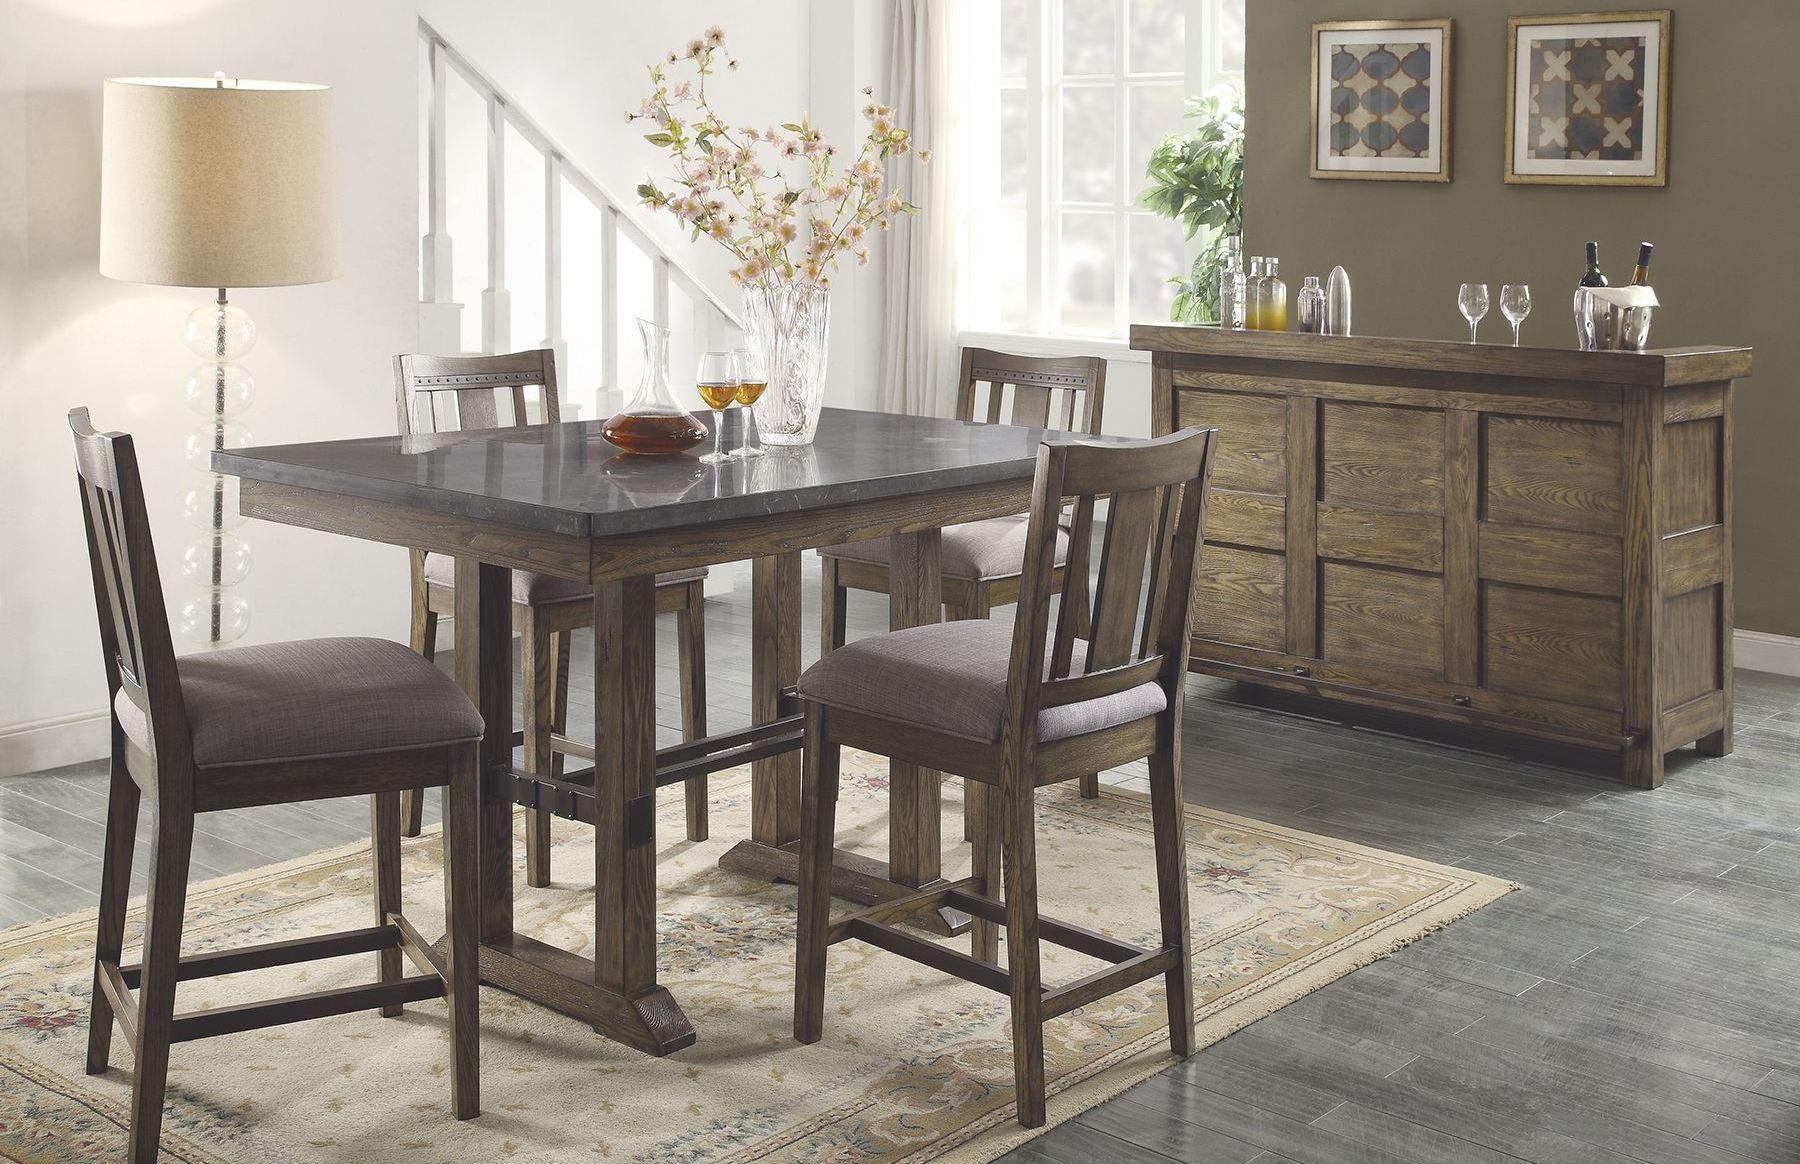 counter height dining room sets willowbrook rustic ash counter height dining room set 106988 coaster furniture 6223